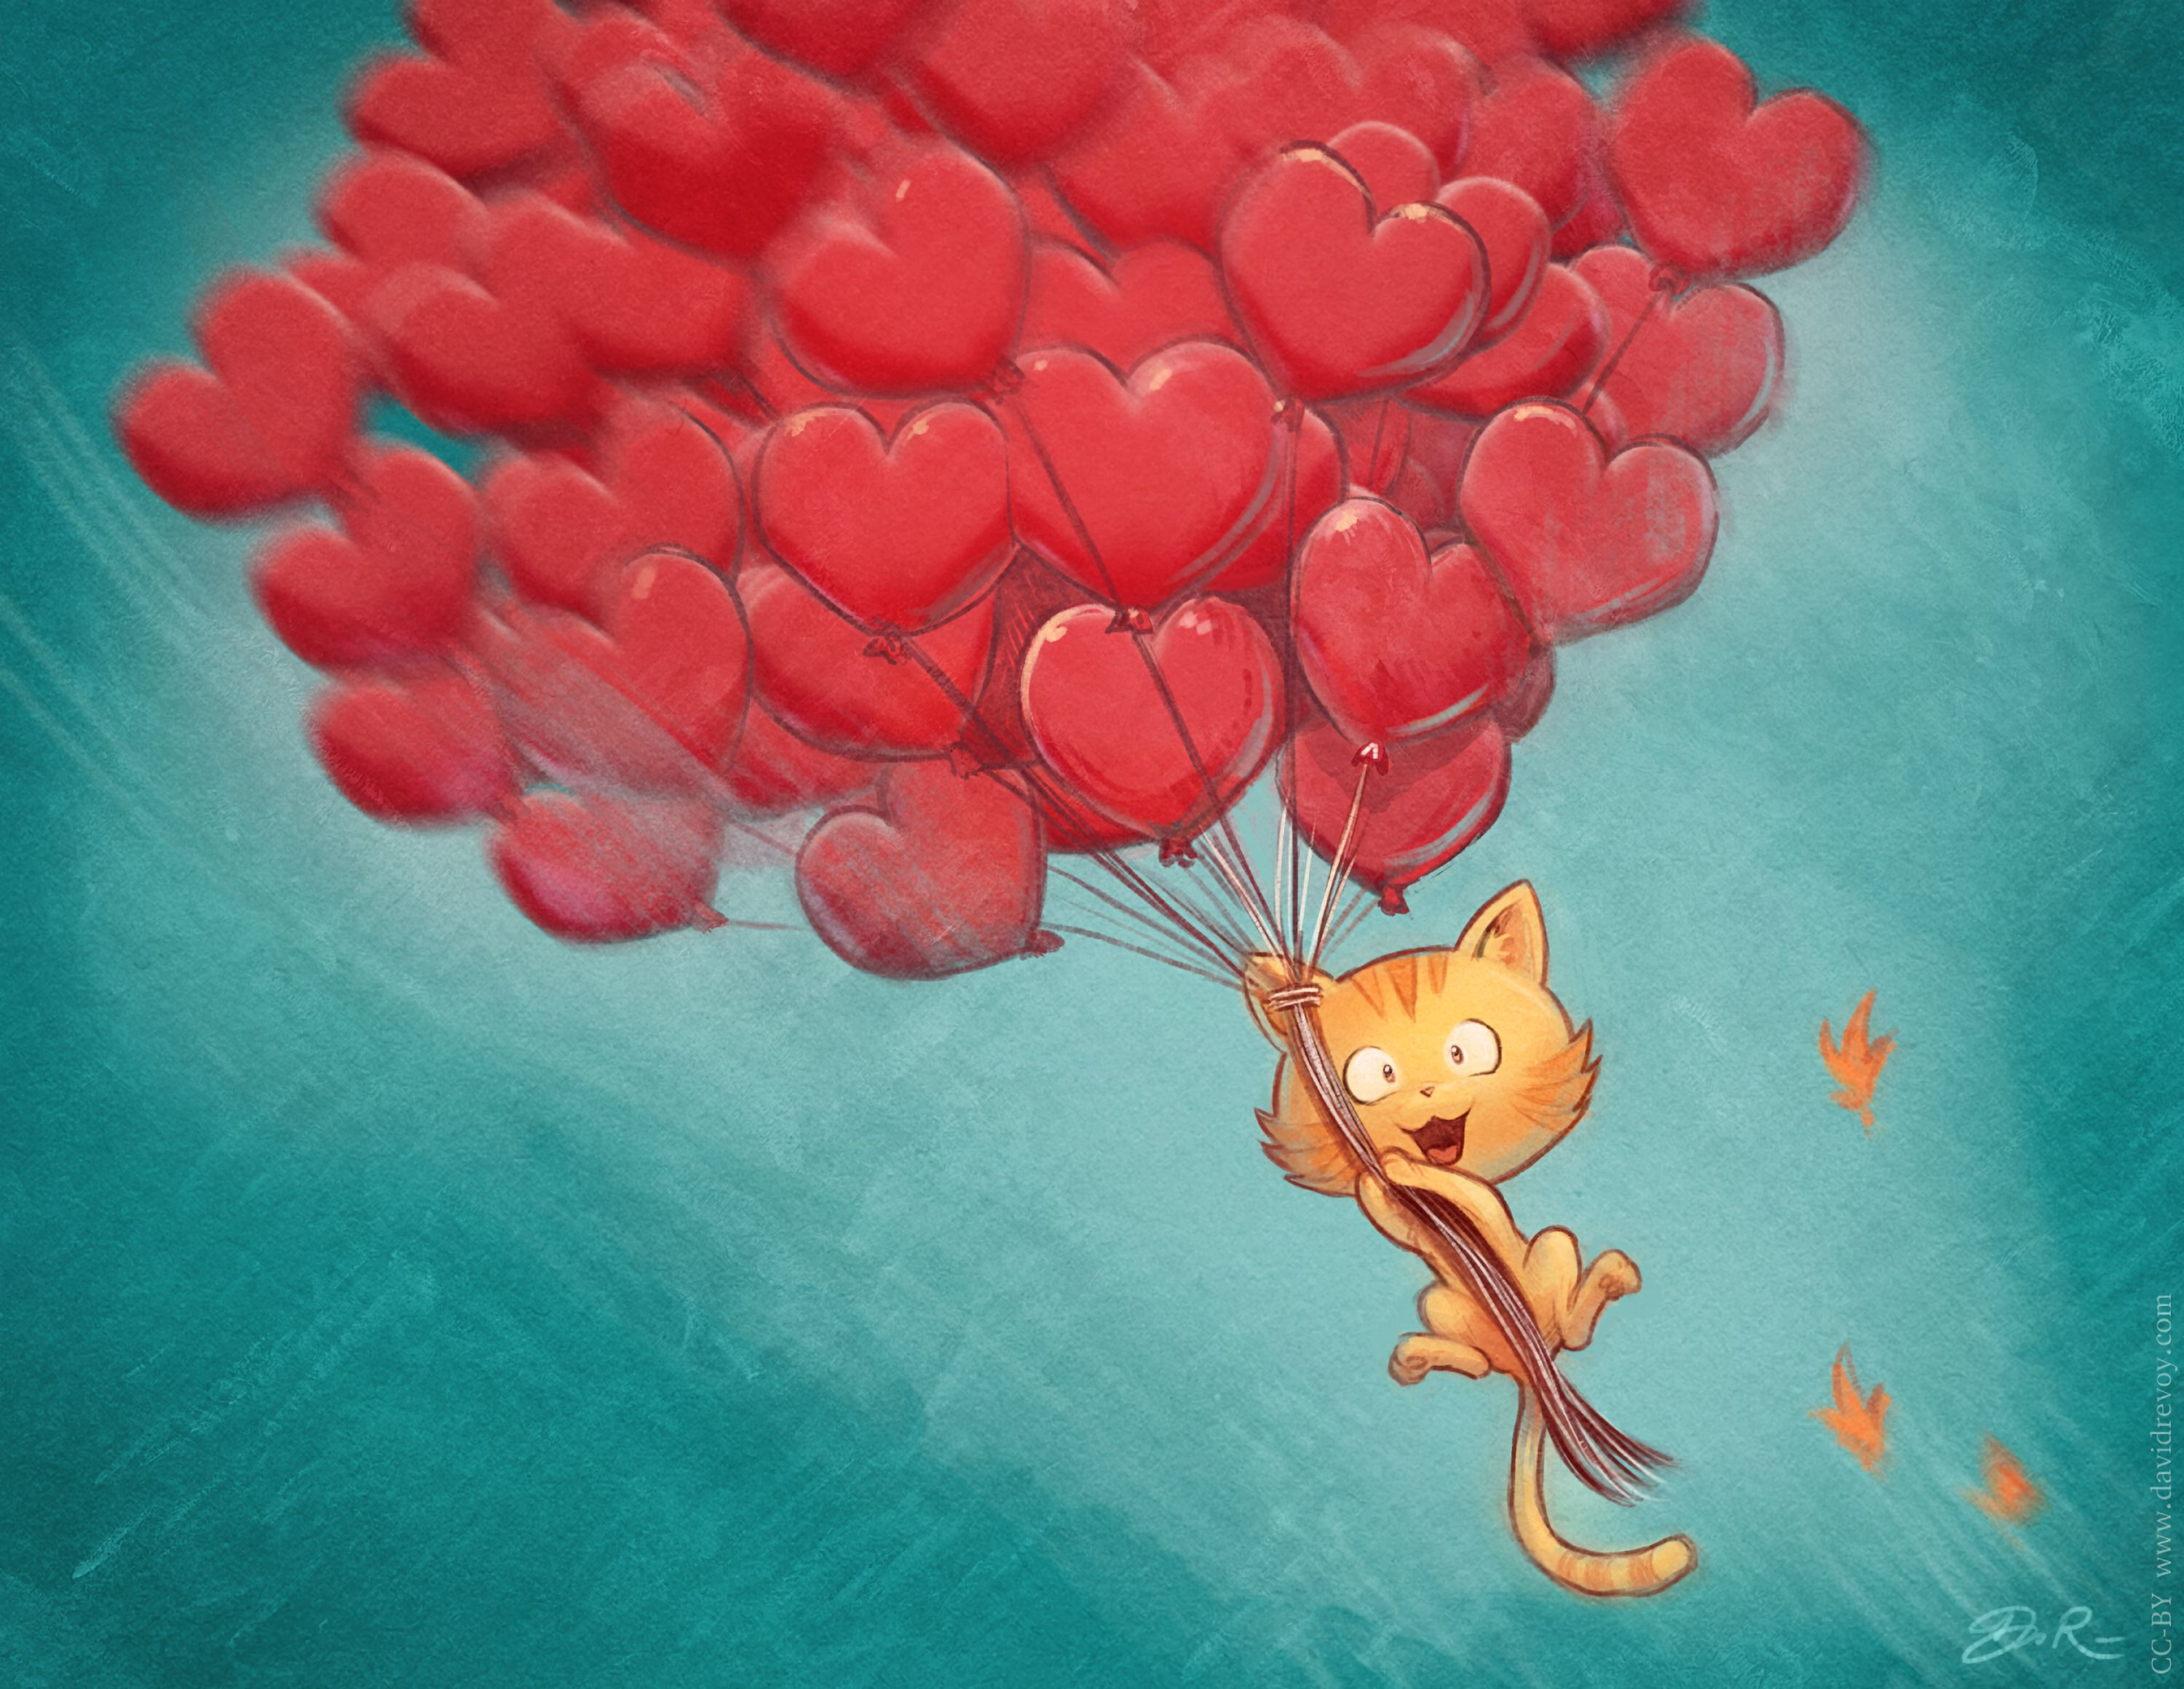 134813 download wallpaper Love, Cat, Air Balloons, Balloons, Flight, Sky, Art, Hearts screensavers and pictures for free